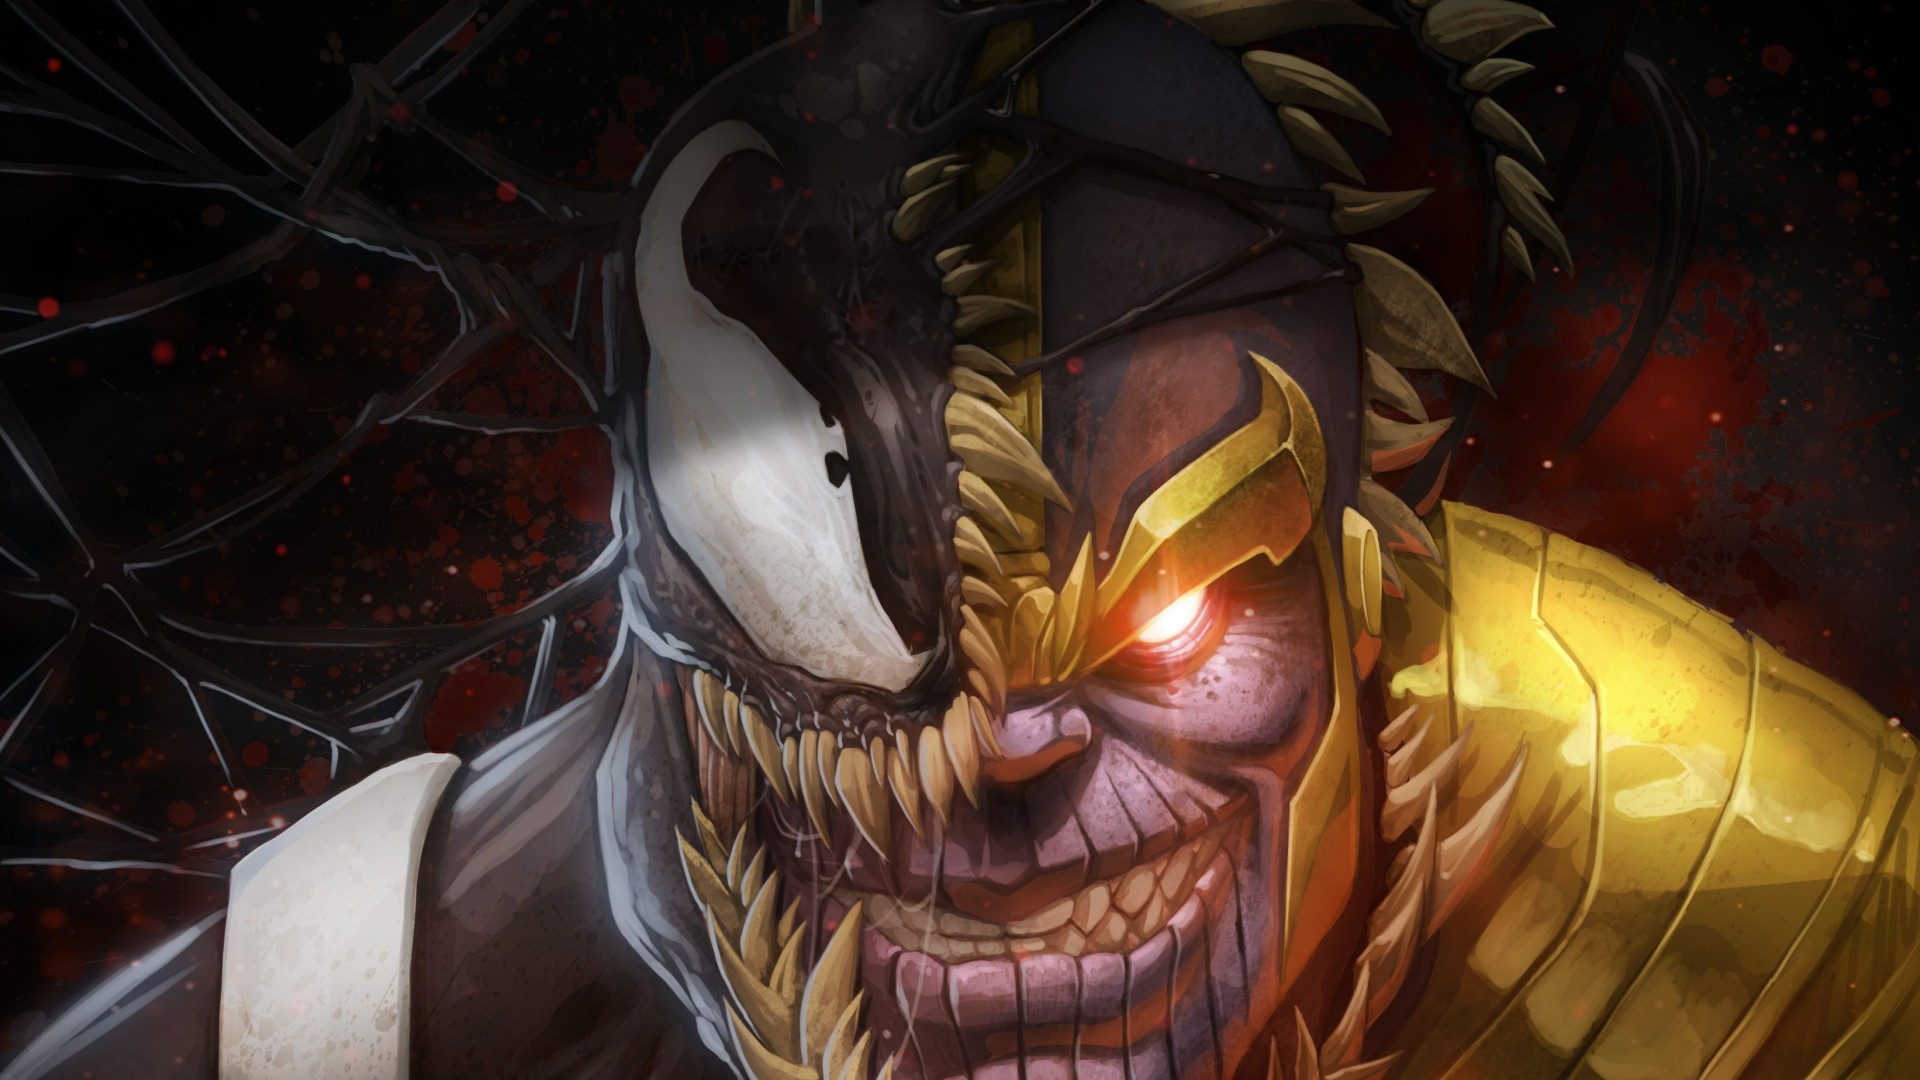 Anime Girl Drawing Wallpaper Wallpaper Marvel Comics Thanos Venom 4k Art 18498